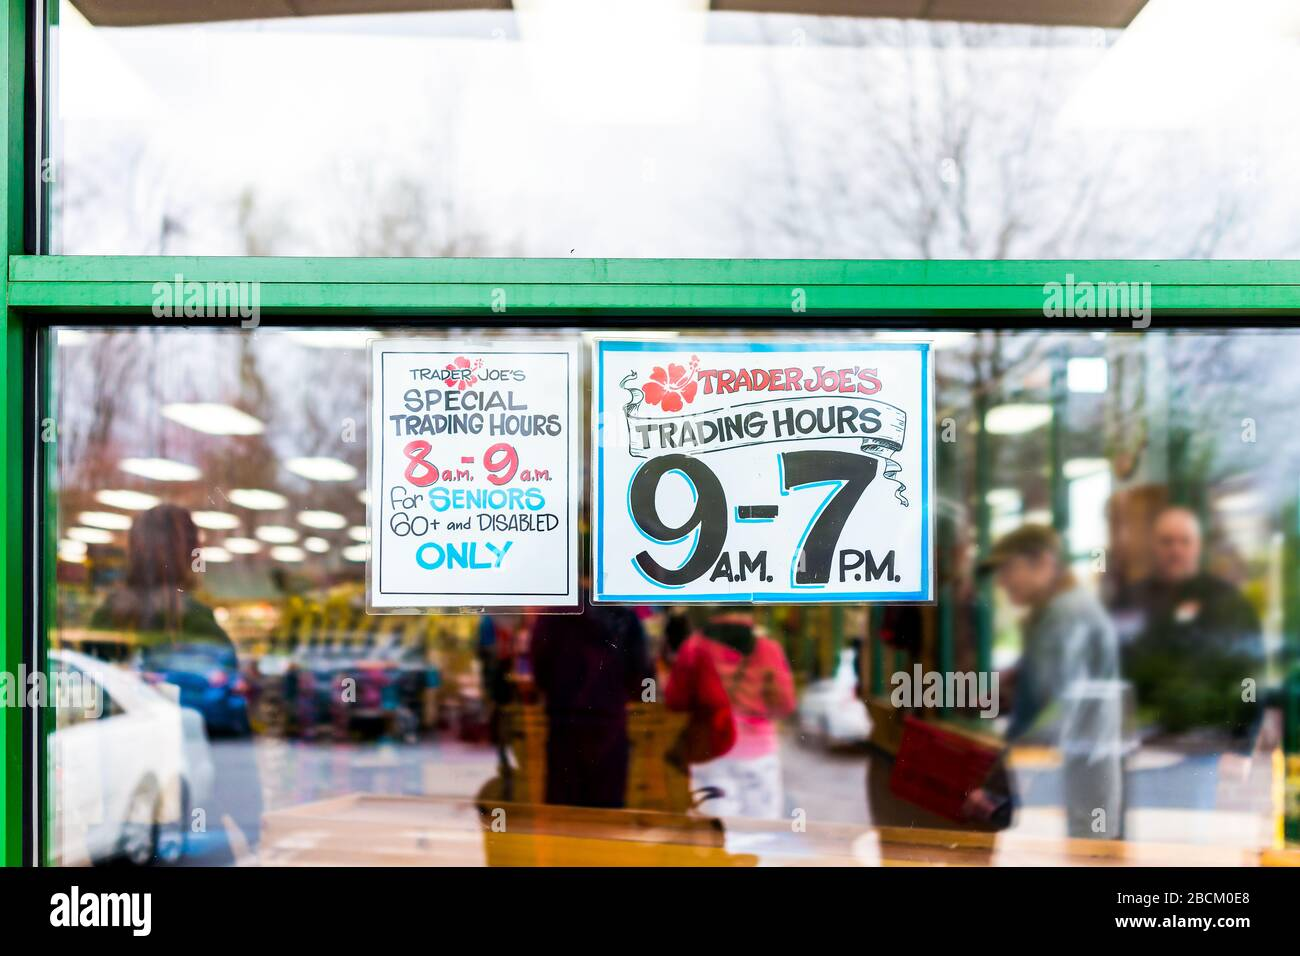 Reston, USA - April 1, 2020: Trader Joe's grocery store window sign for senior customers with special morning and regular open hours for old people du Stock Photo